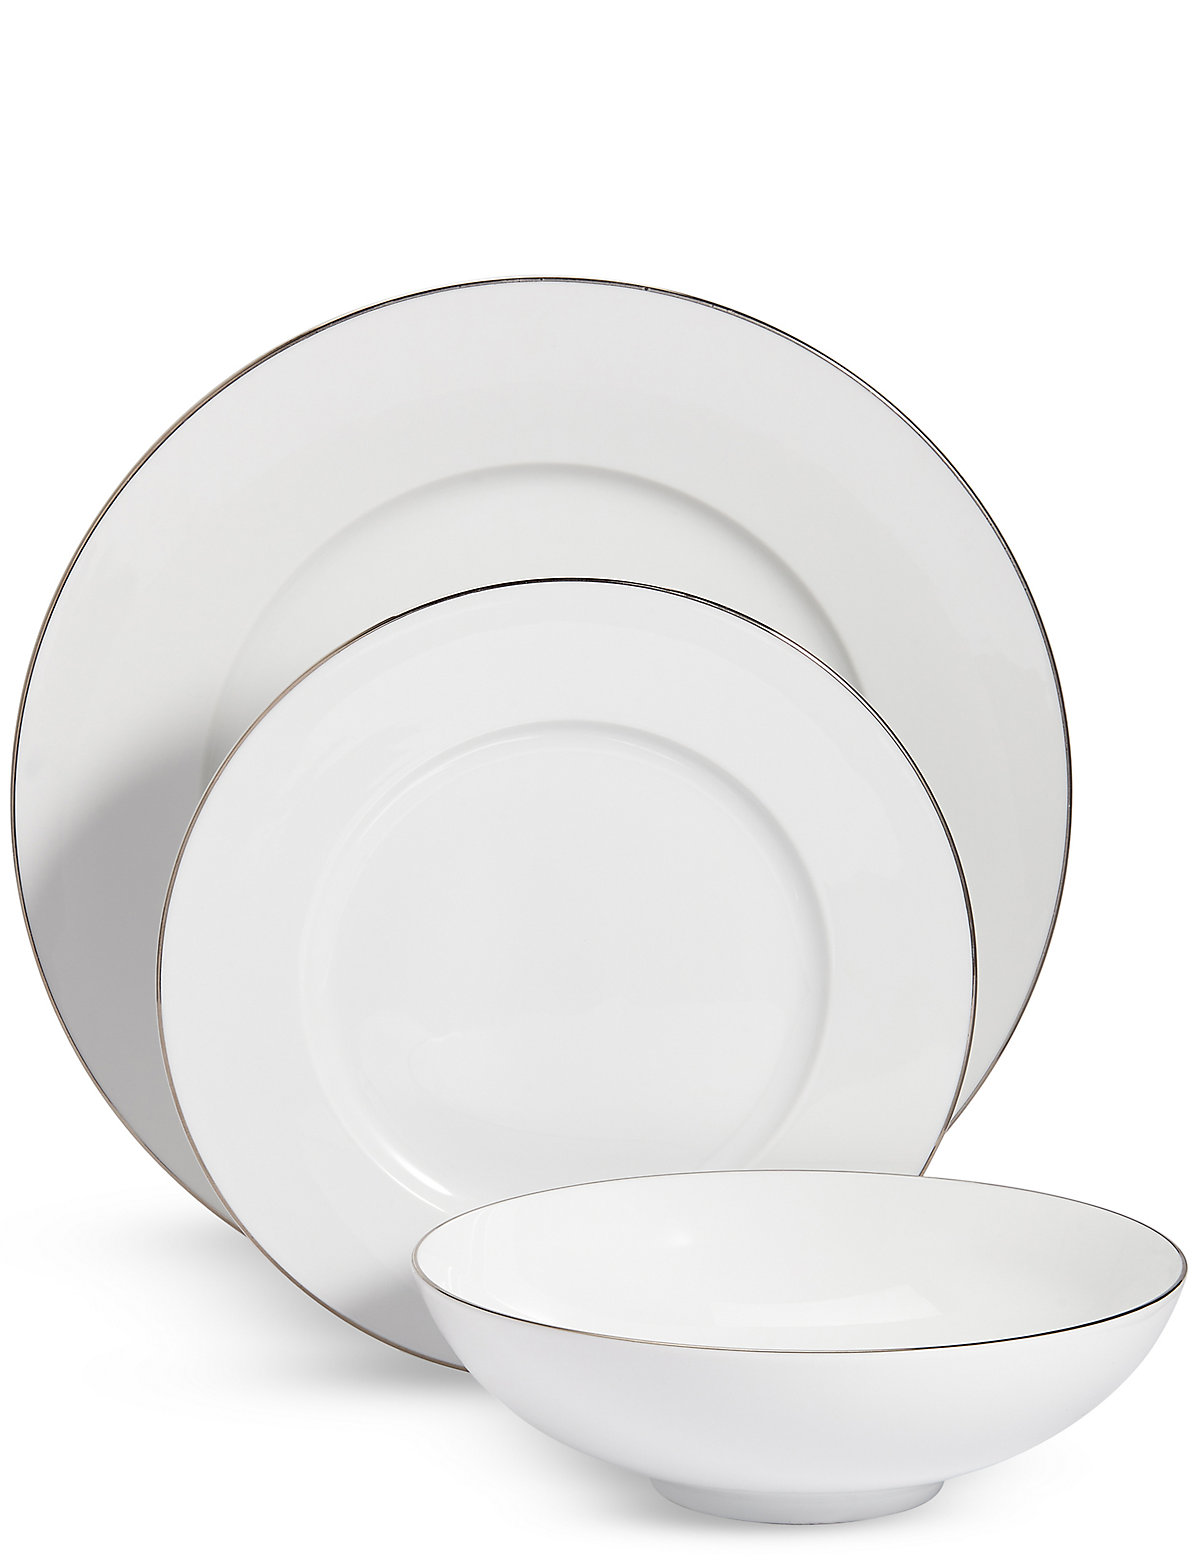 Image of 12 Piece Maxim Platinum Dinner Set